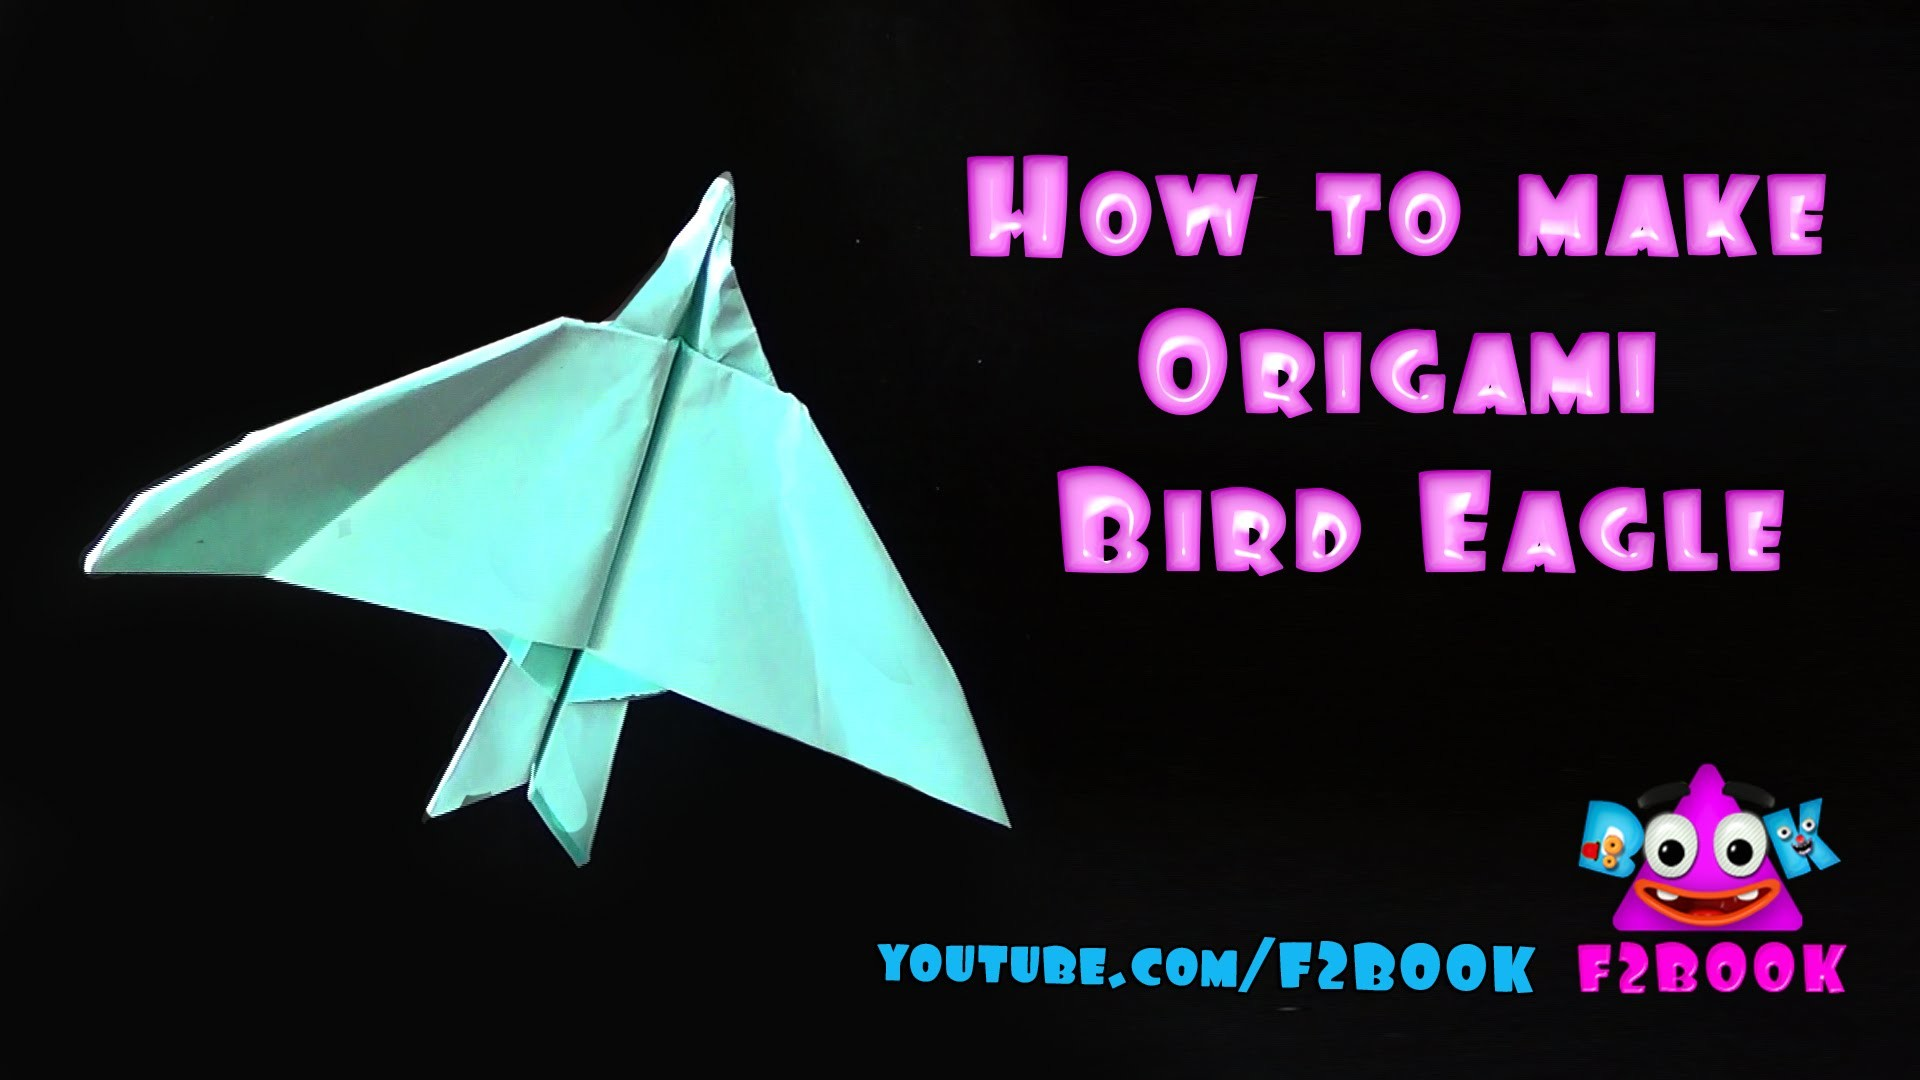 Origami Eagle - How to Make Eagle Bird - Easy Paper Folding Art By F2BOOK